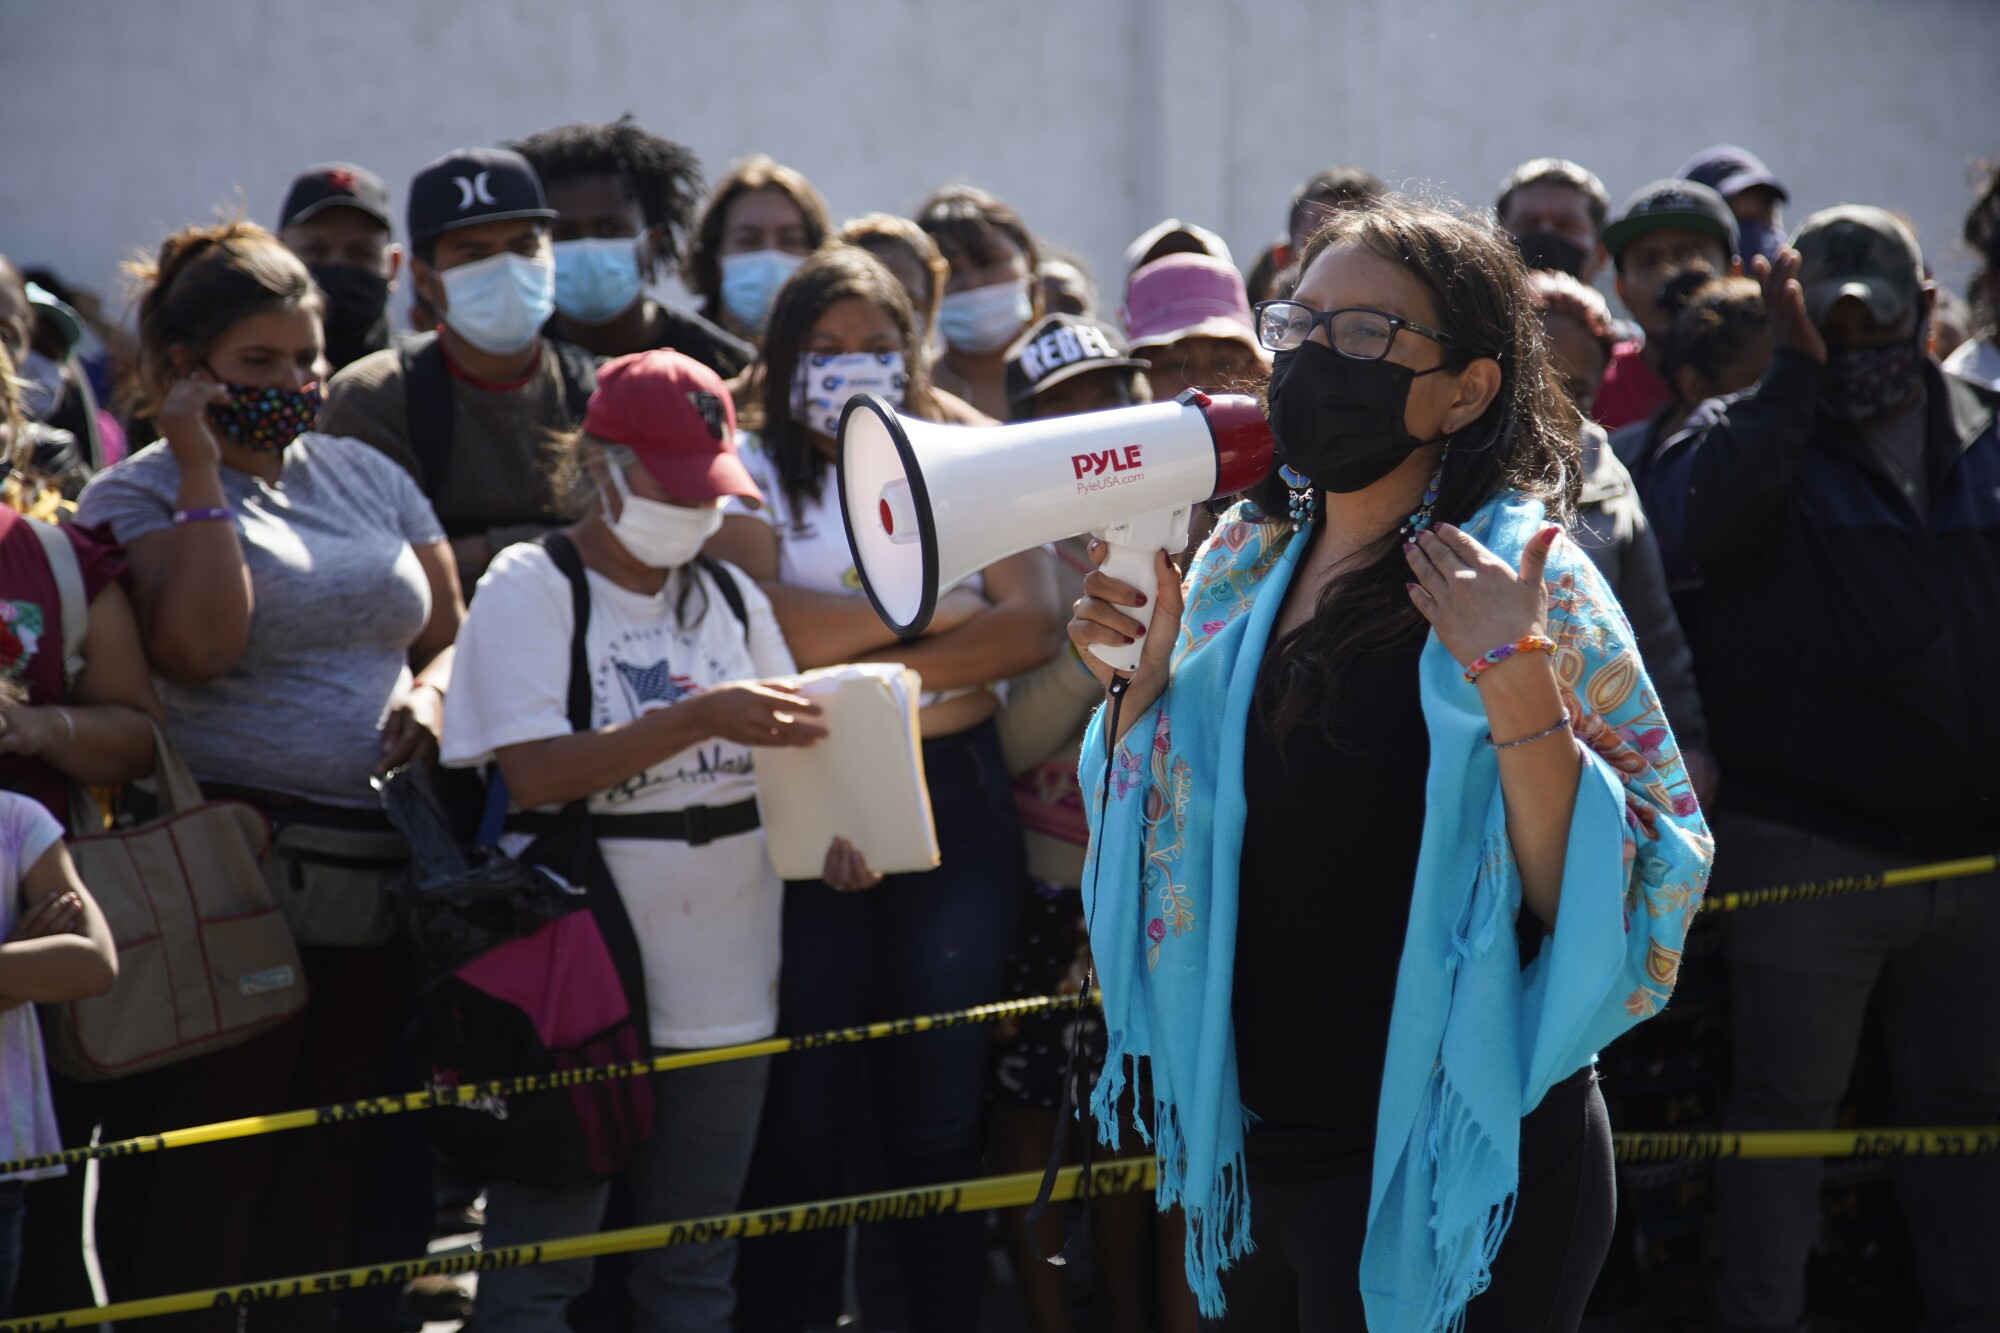 A woman with a megaphone speaks to a group of people.